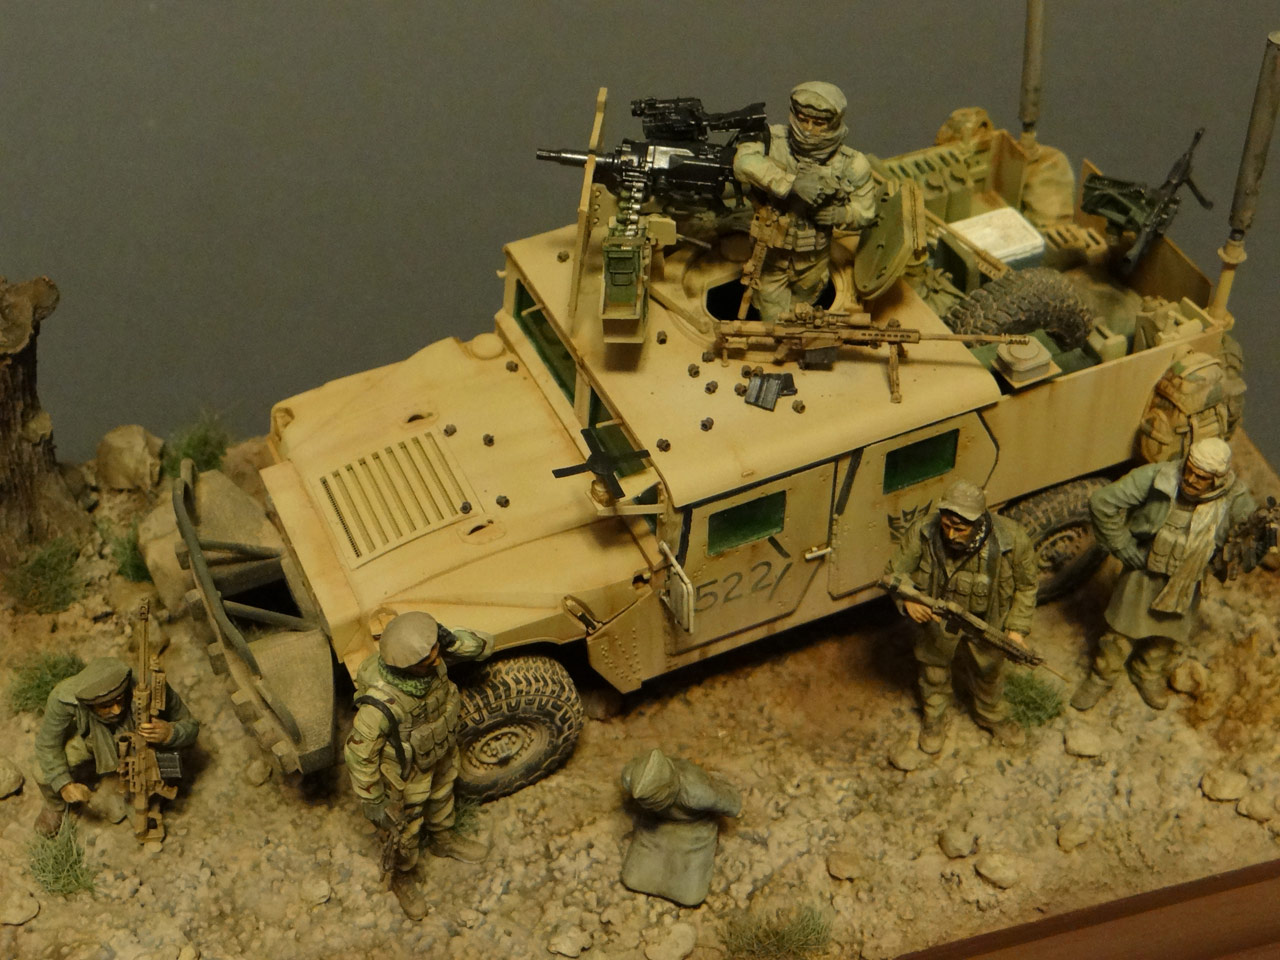 Dioramas and Vignettes: Behind the enemy's lines, photo #6